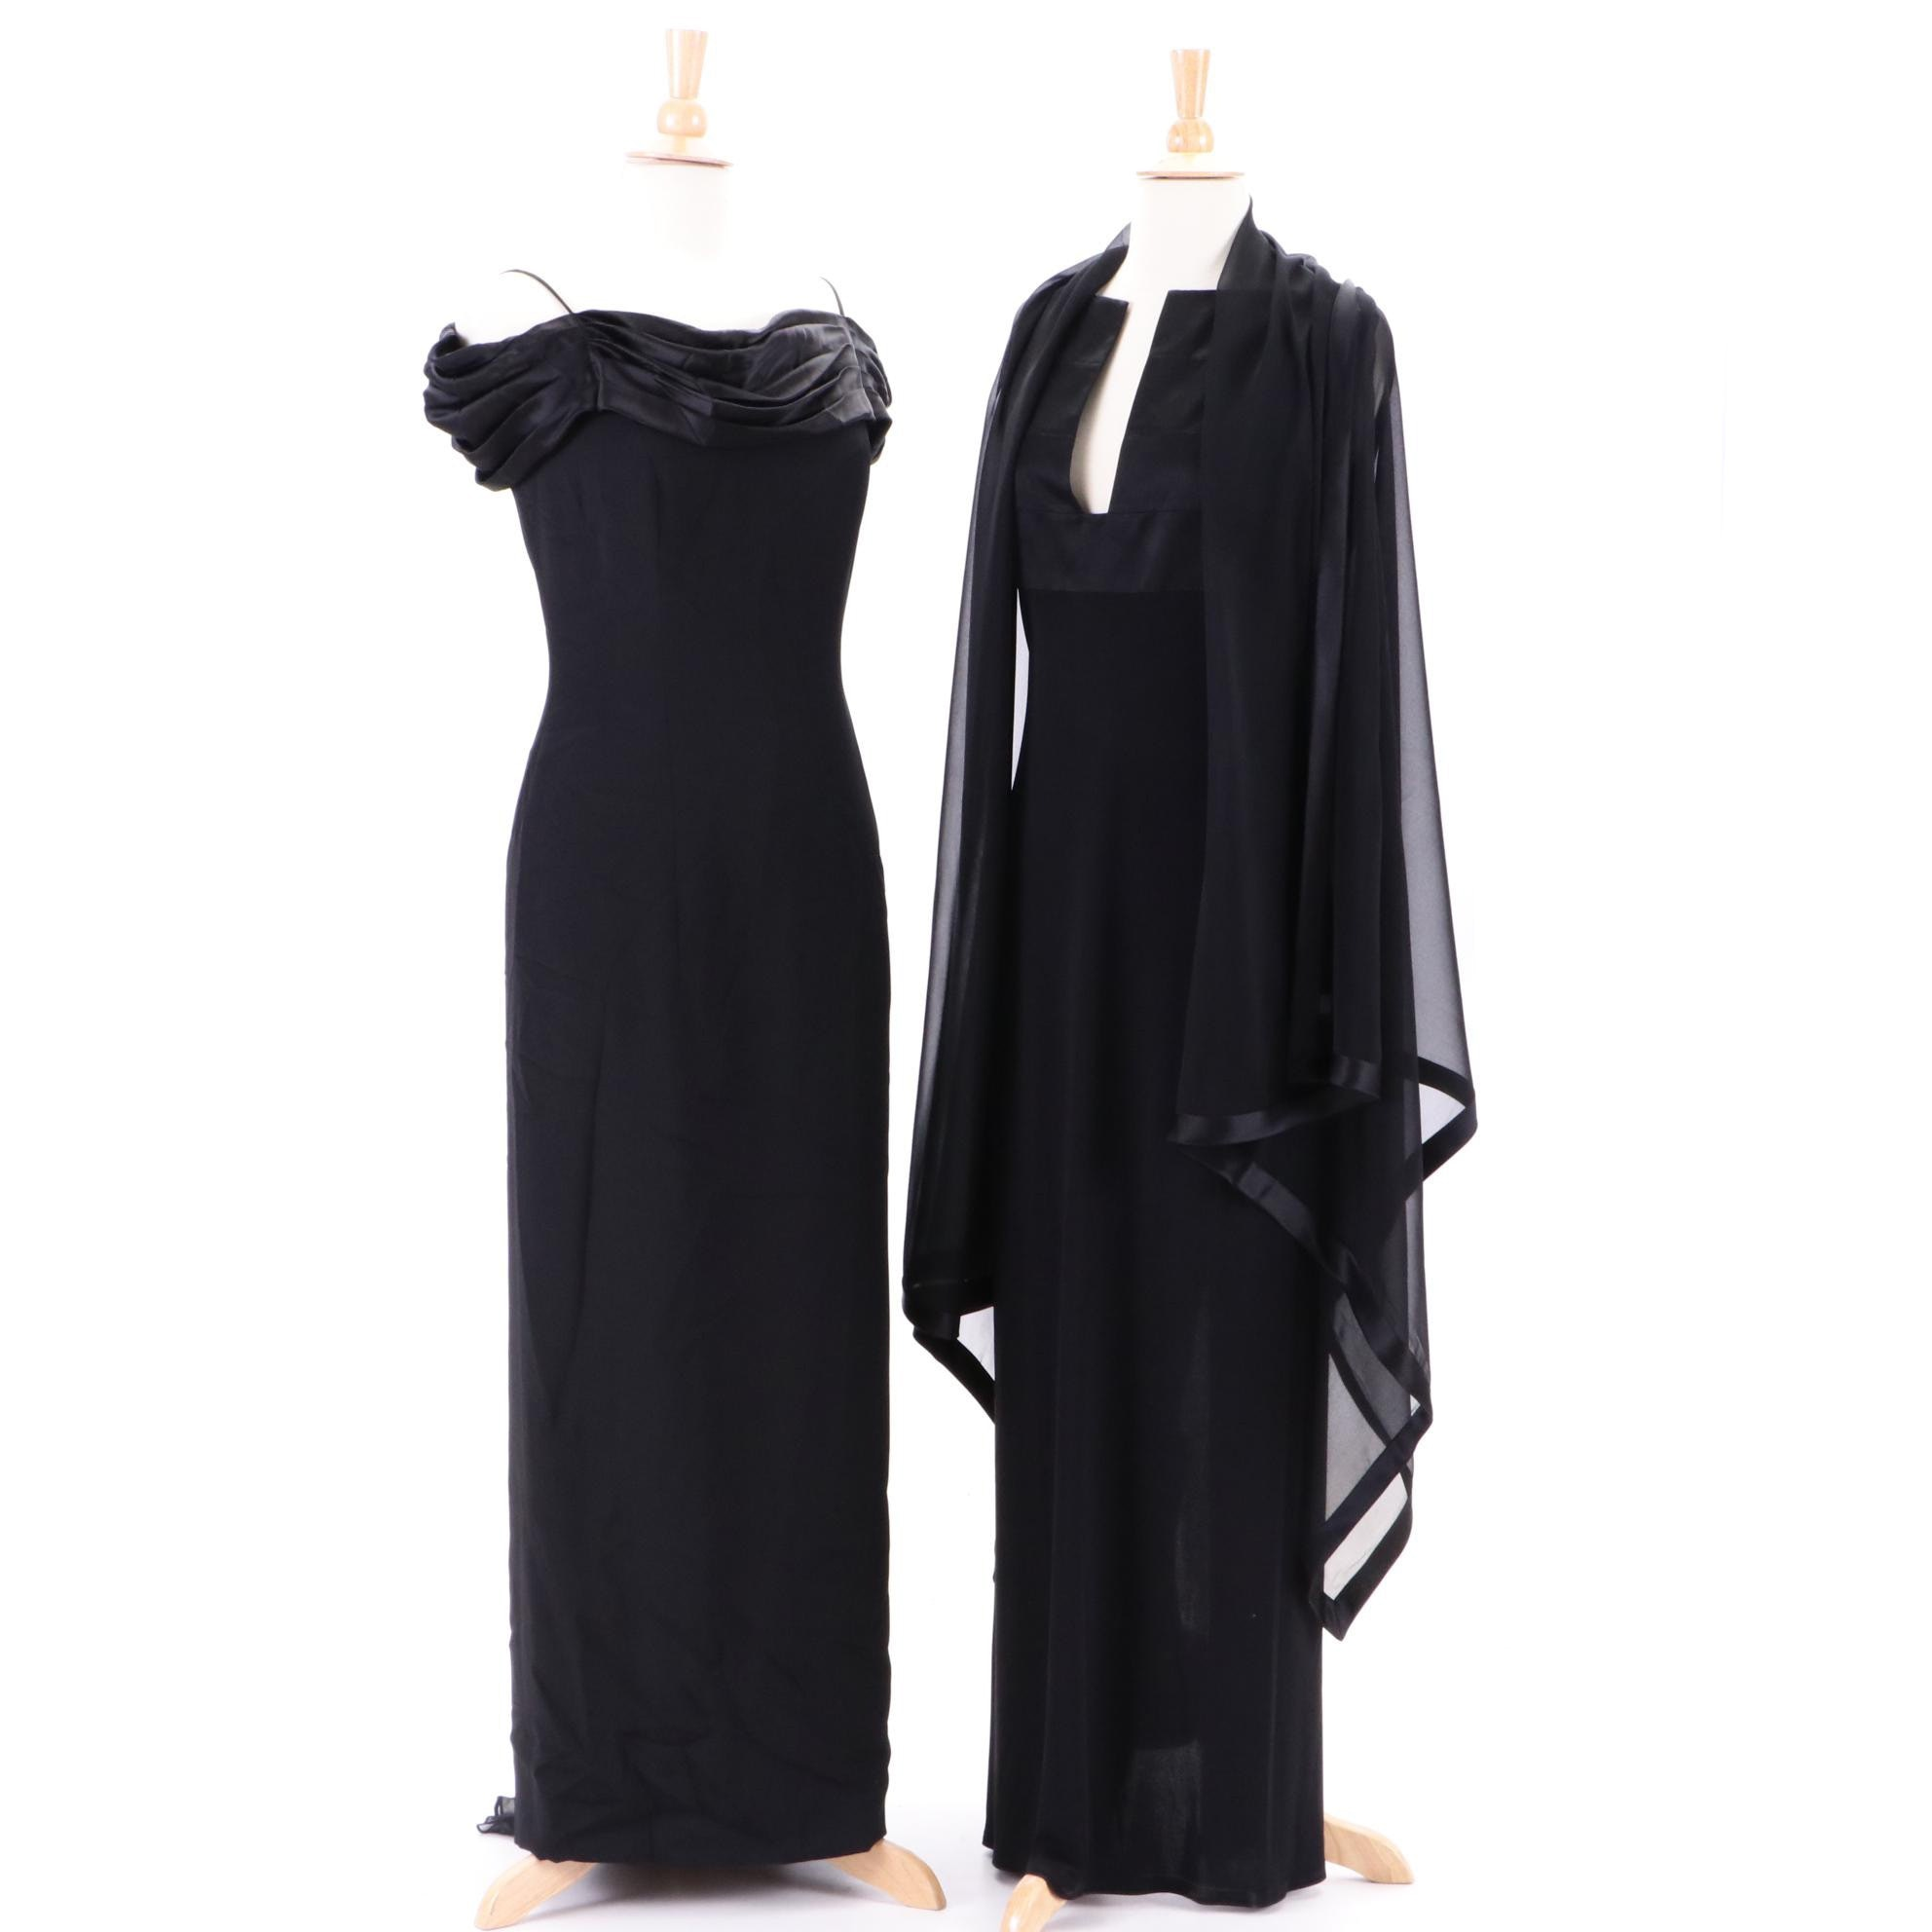 Women's Black Silk Evening Gowns Including Westcott with Matching Shawl